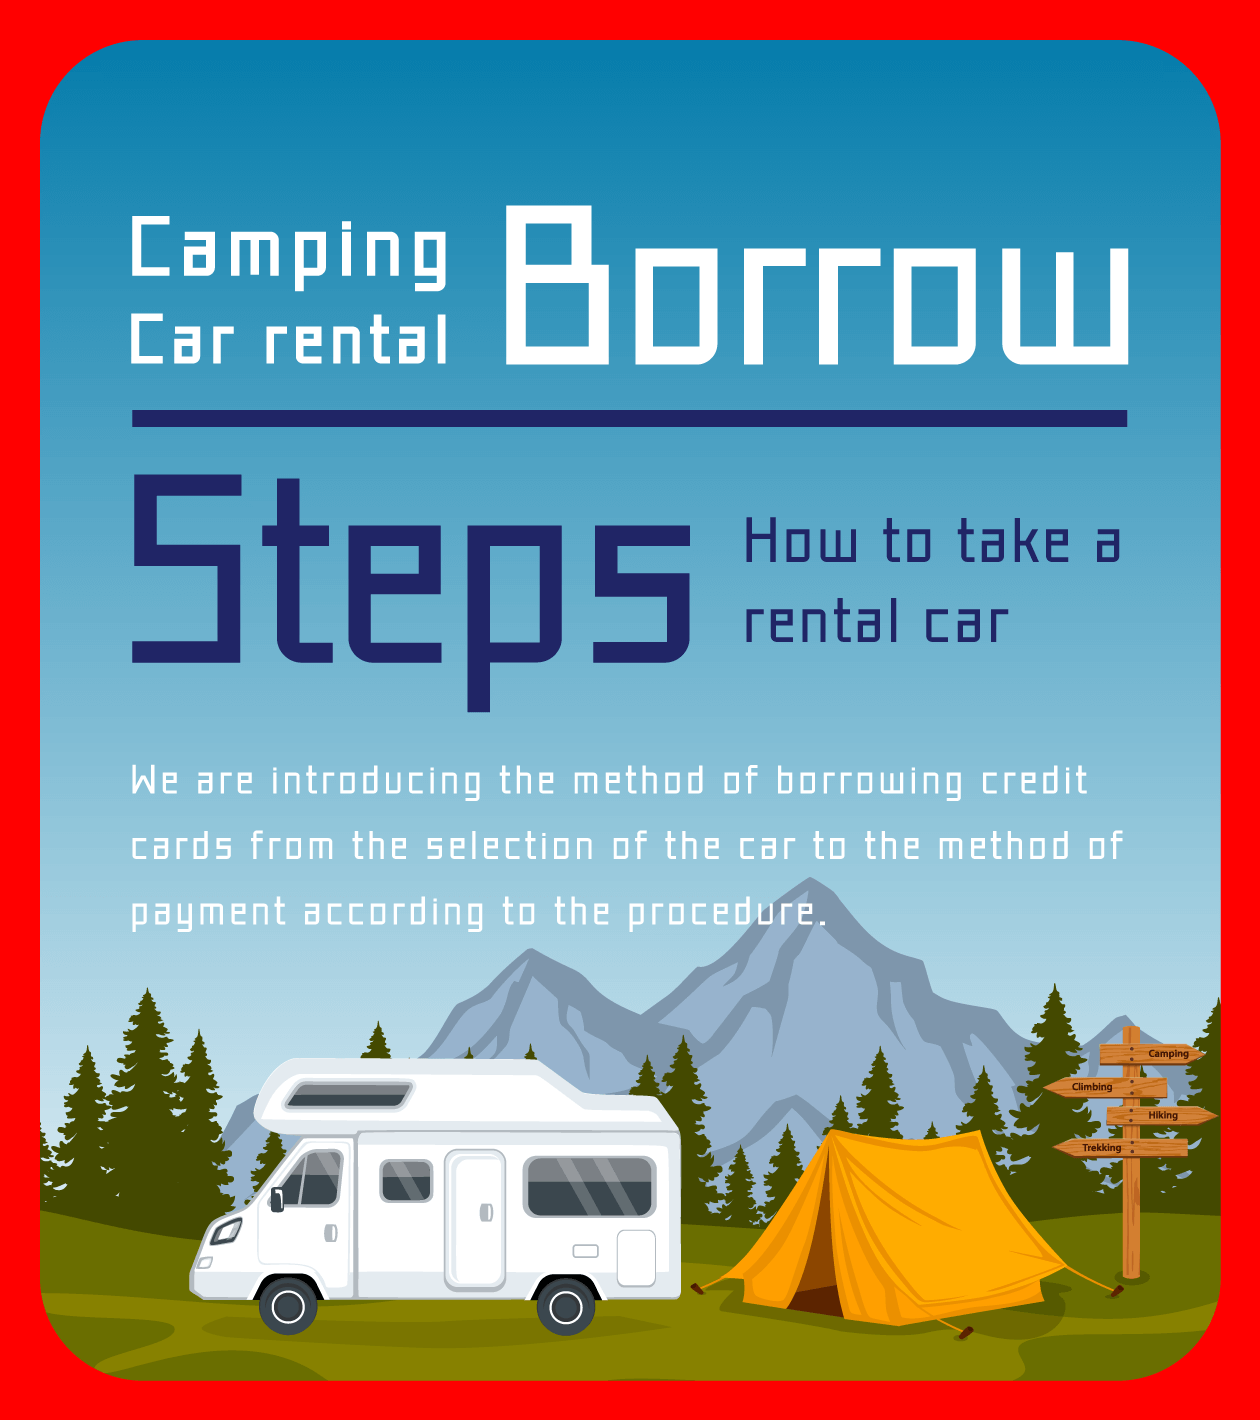 Flow of using rental car